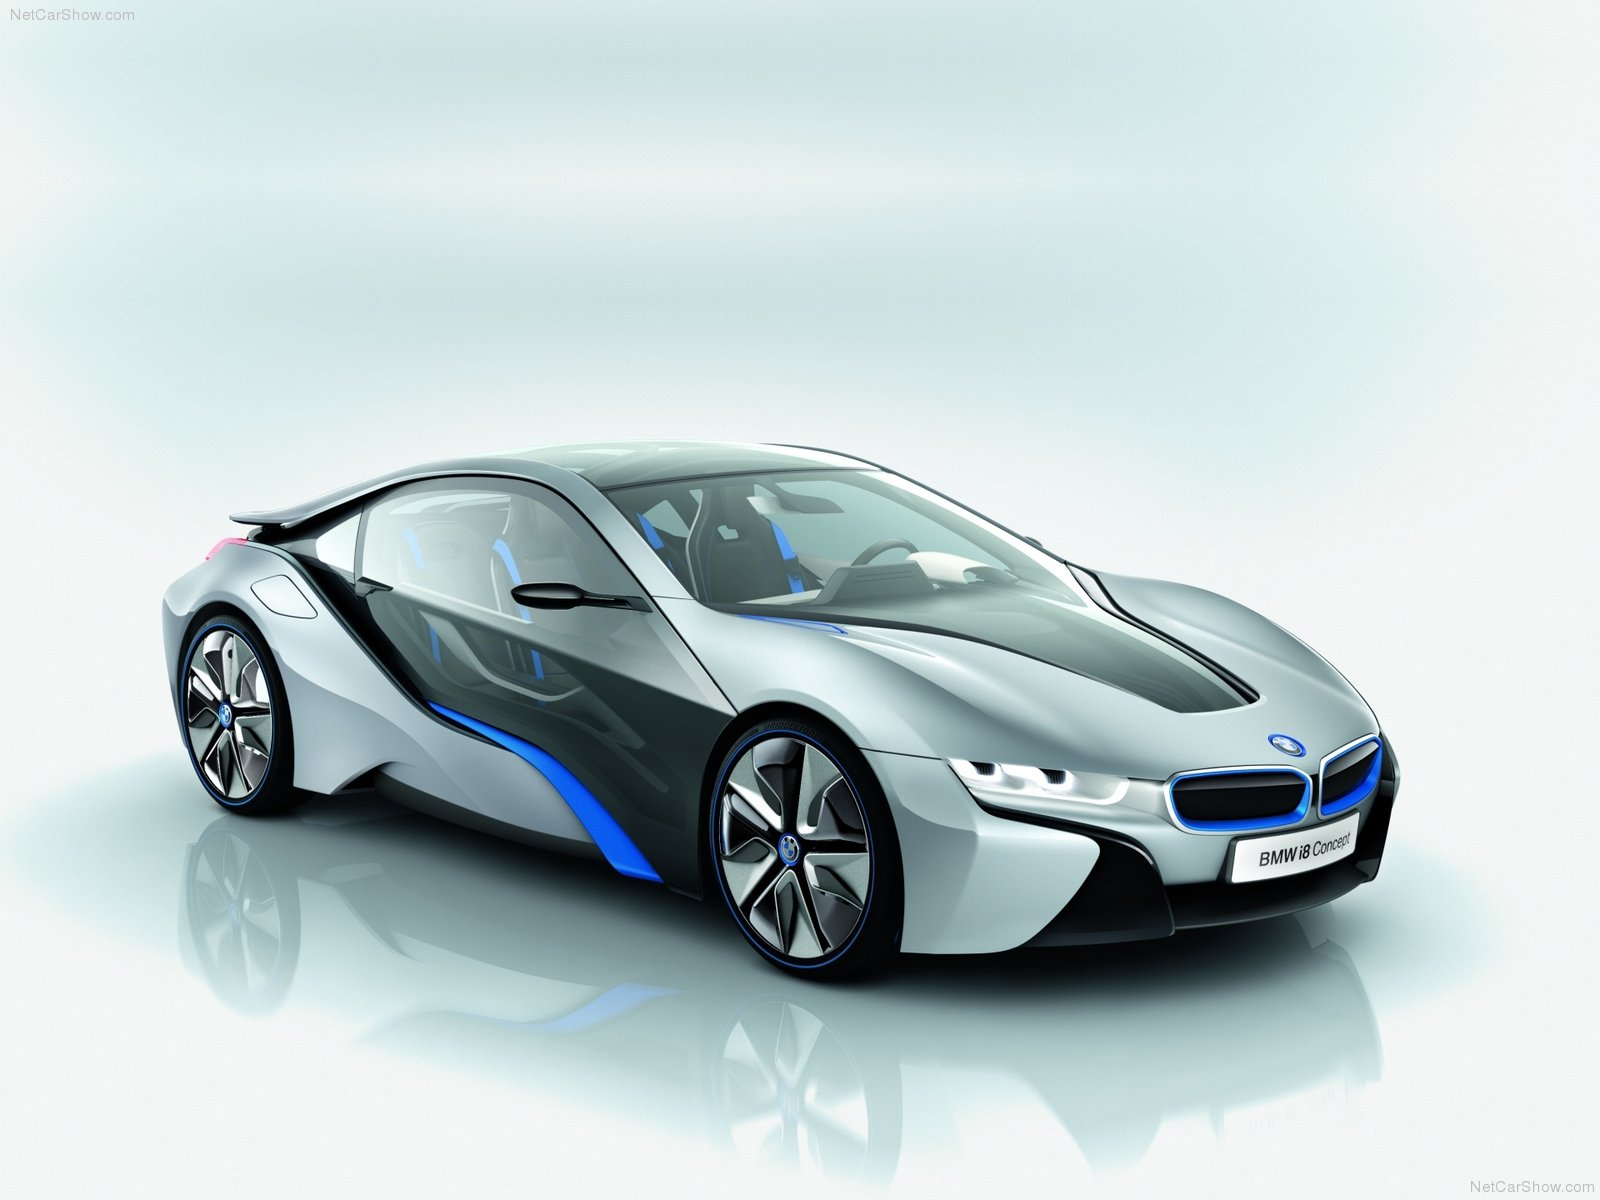 Bmw i8hybrid electric car price in india 2